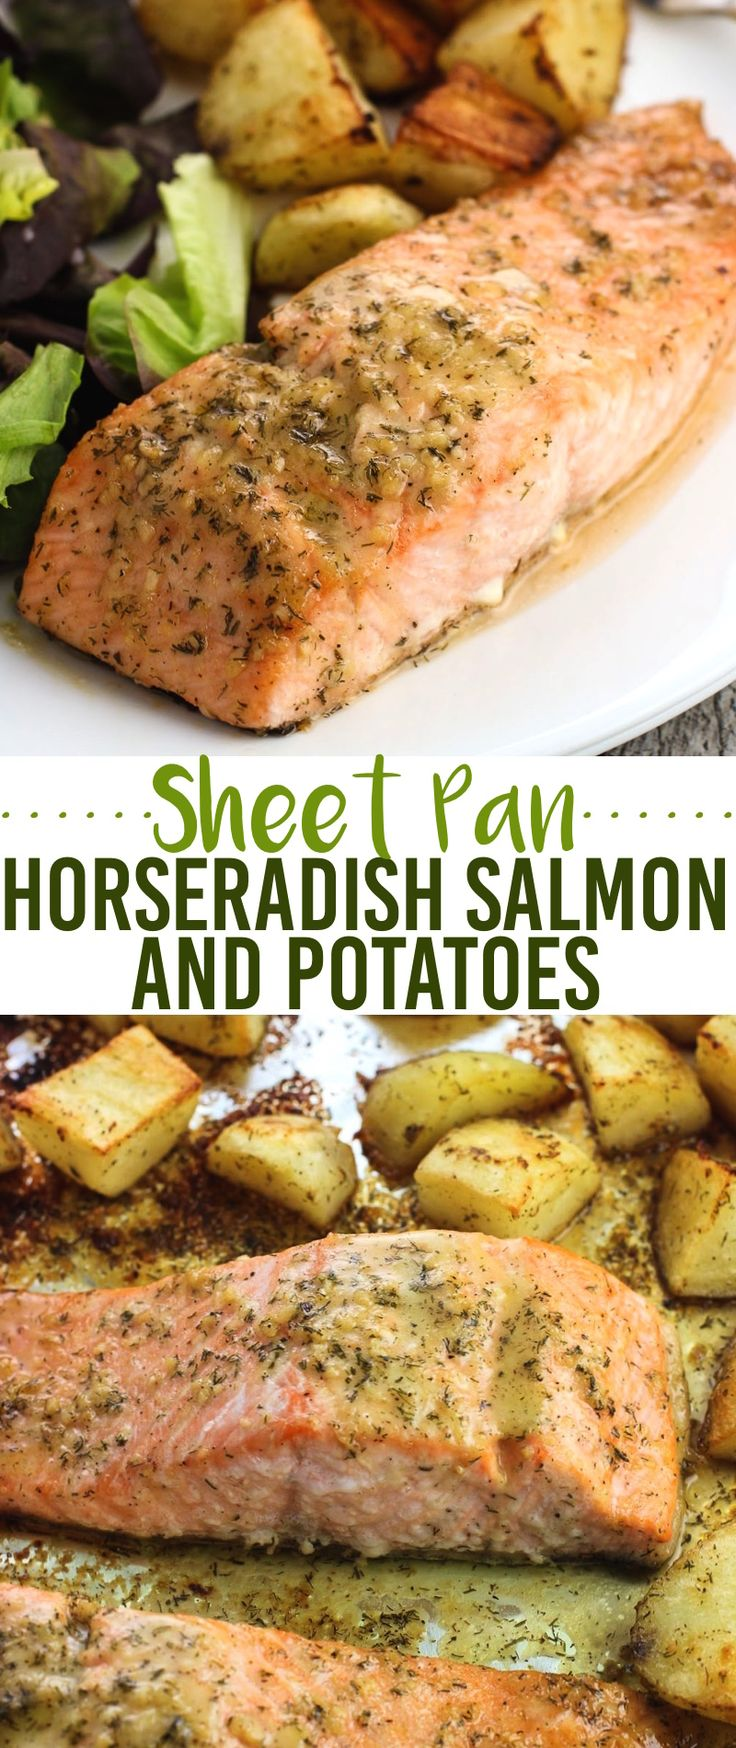 Potatoes and salmon are cooked on the same pan in this sheet pan horseradish salmon and potatoes recipe. A horseradish dill sauce coats the salmon beautifully with no marinating required!